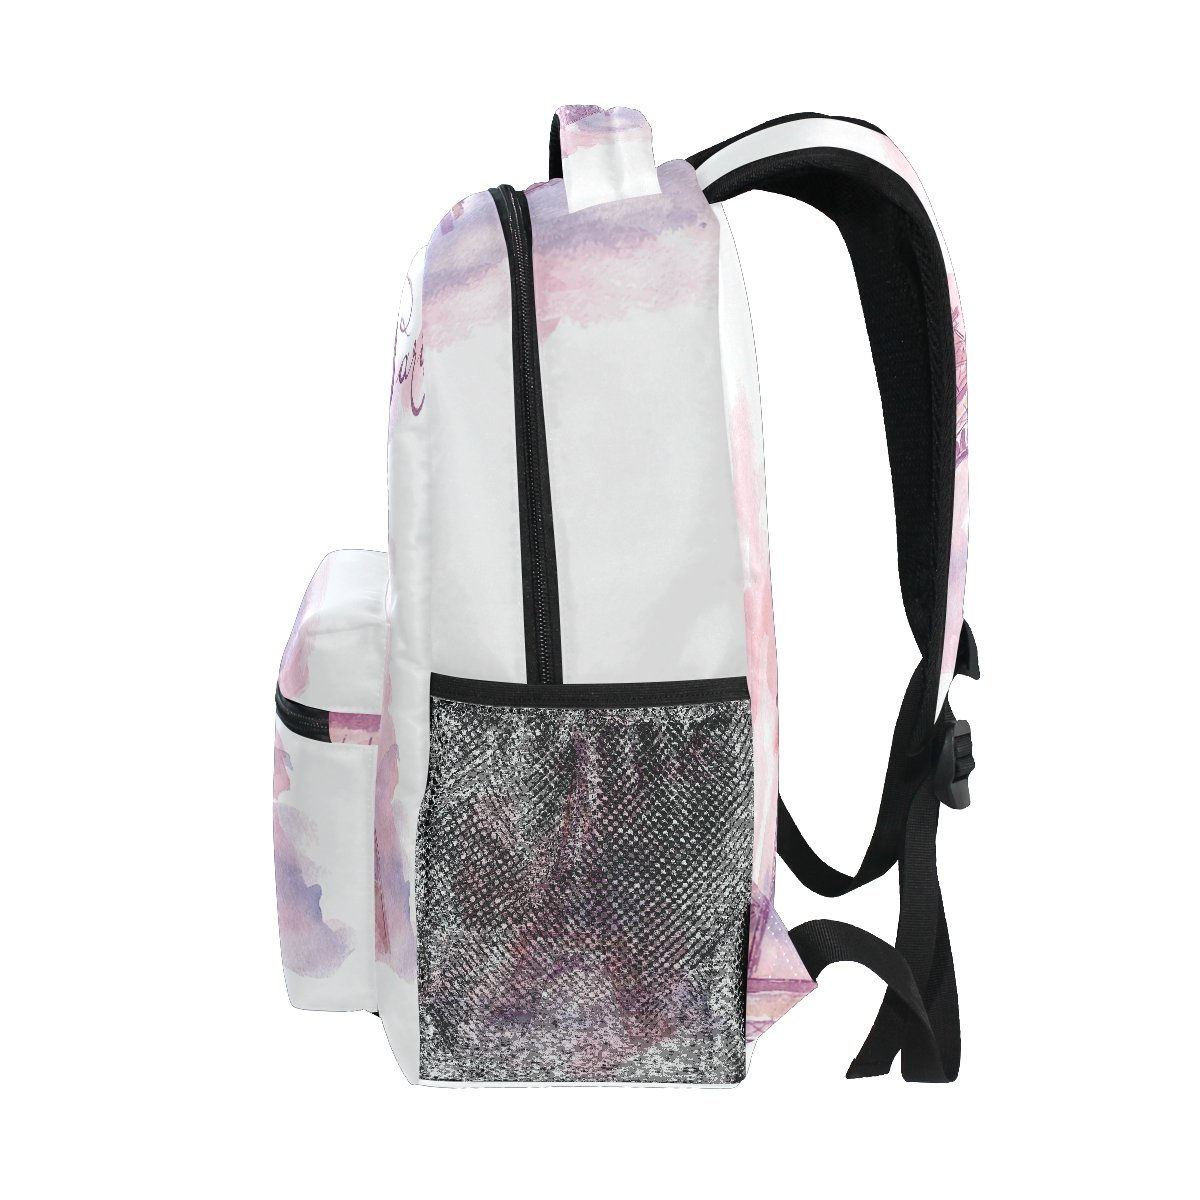 Amazon.com : GIOVANIOR Watercolor Paris Eiffel Tower Landmark Backpack School Bag Bookbag Hiking Travel Rucksack : Sports & Outdoors